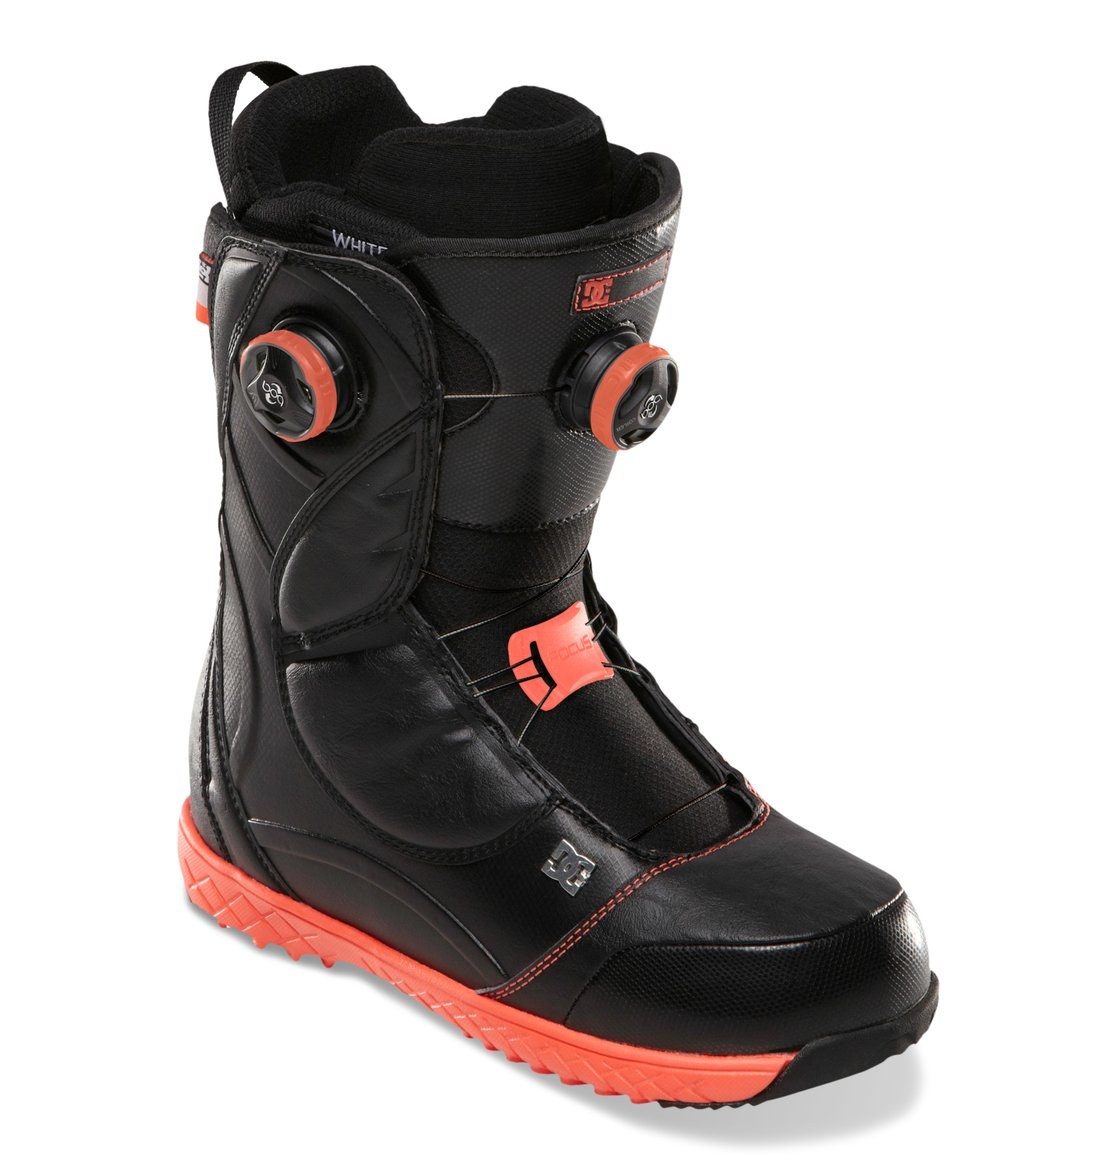 mora women Transfer from high-speed park laps to technical steeps seamlessly with the mid-stiff flex and dual-zone tightening of the dc women's mora boa snowboard boots.